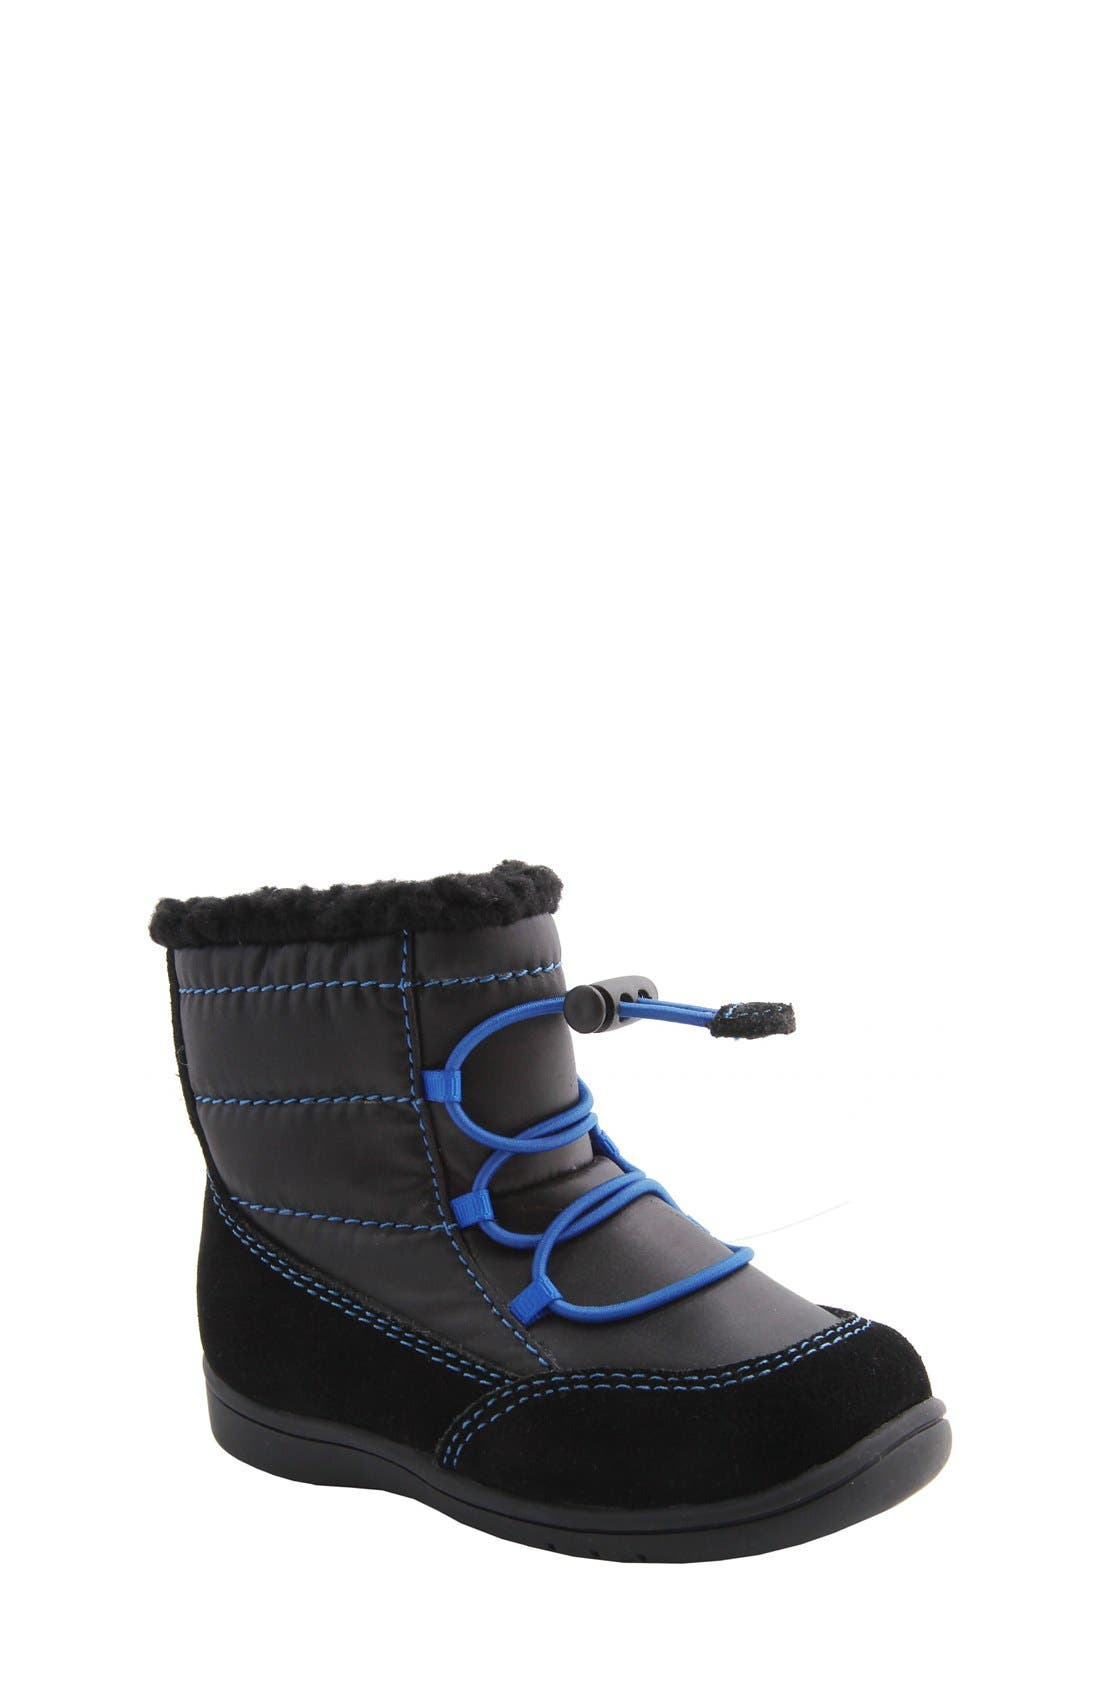 MOBILITY Nina 'Yolie' Lace-Up Boot, Main, color, BLACK